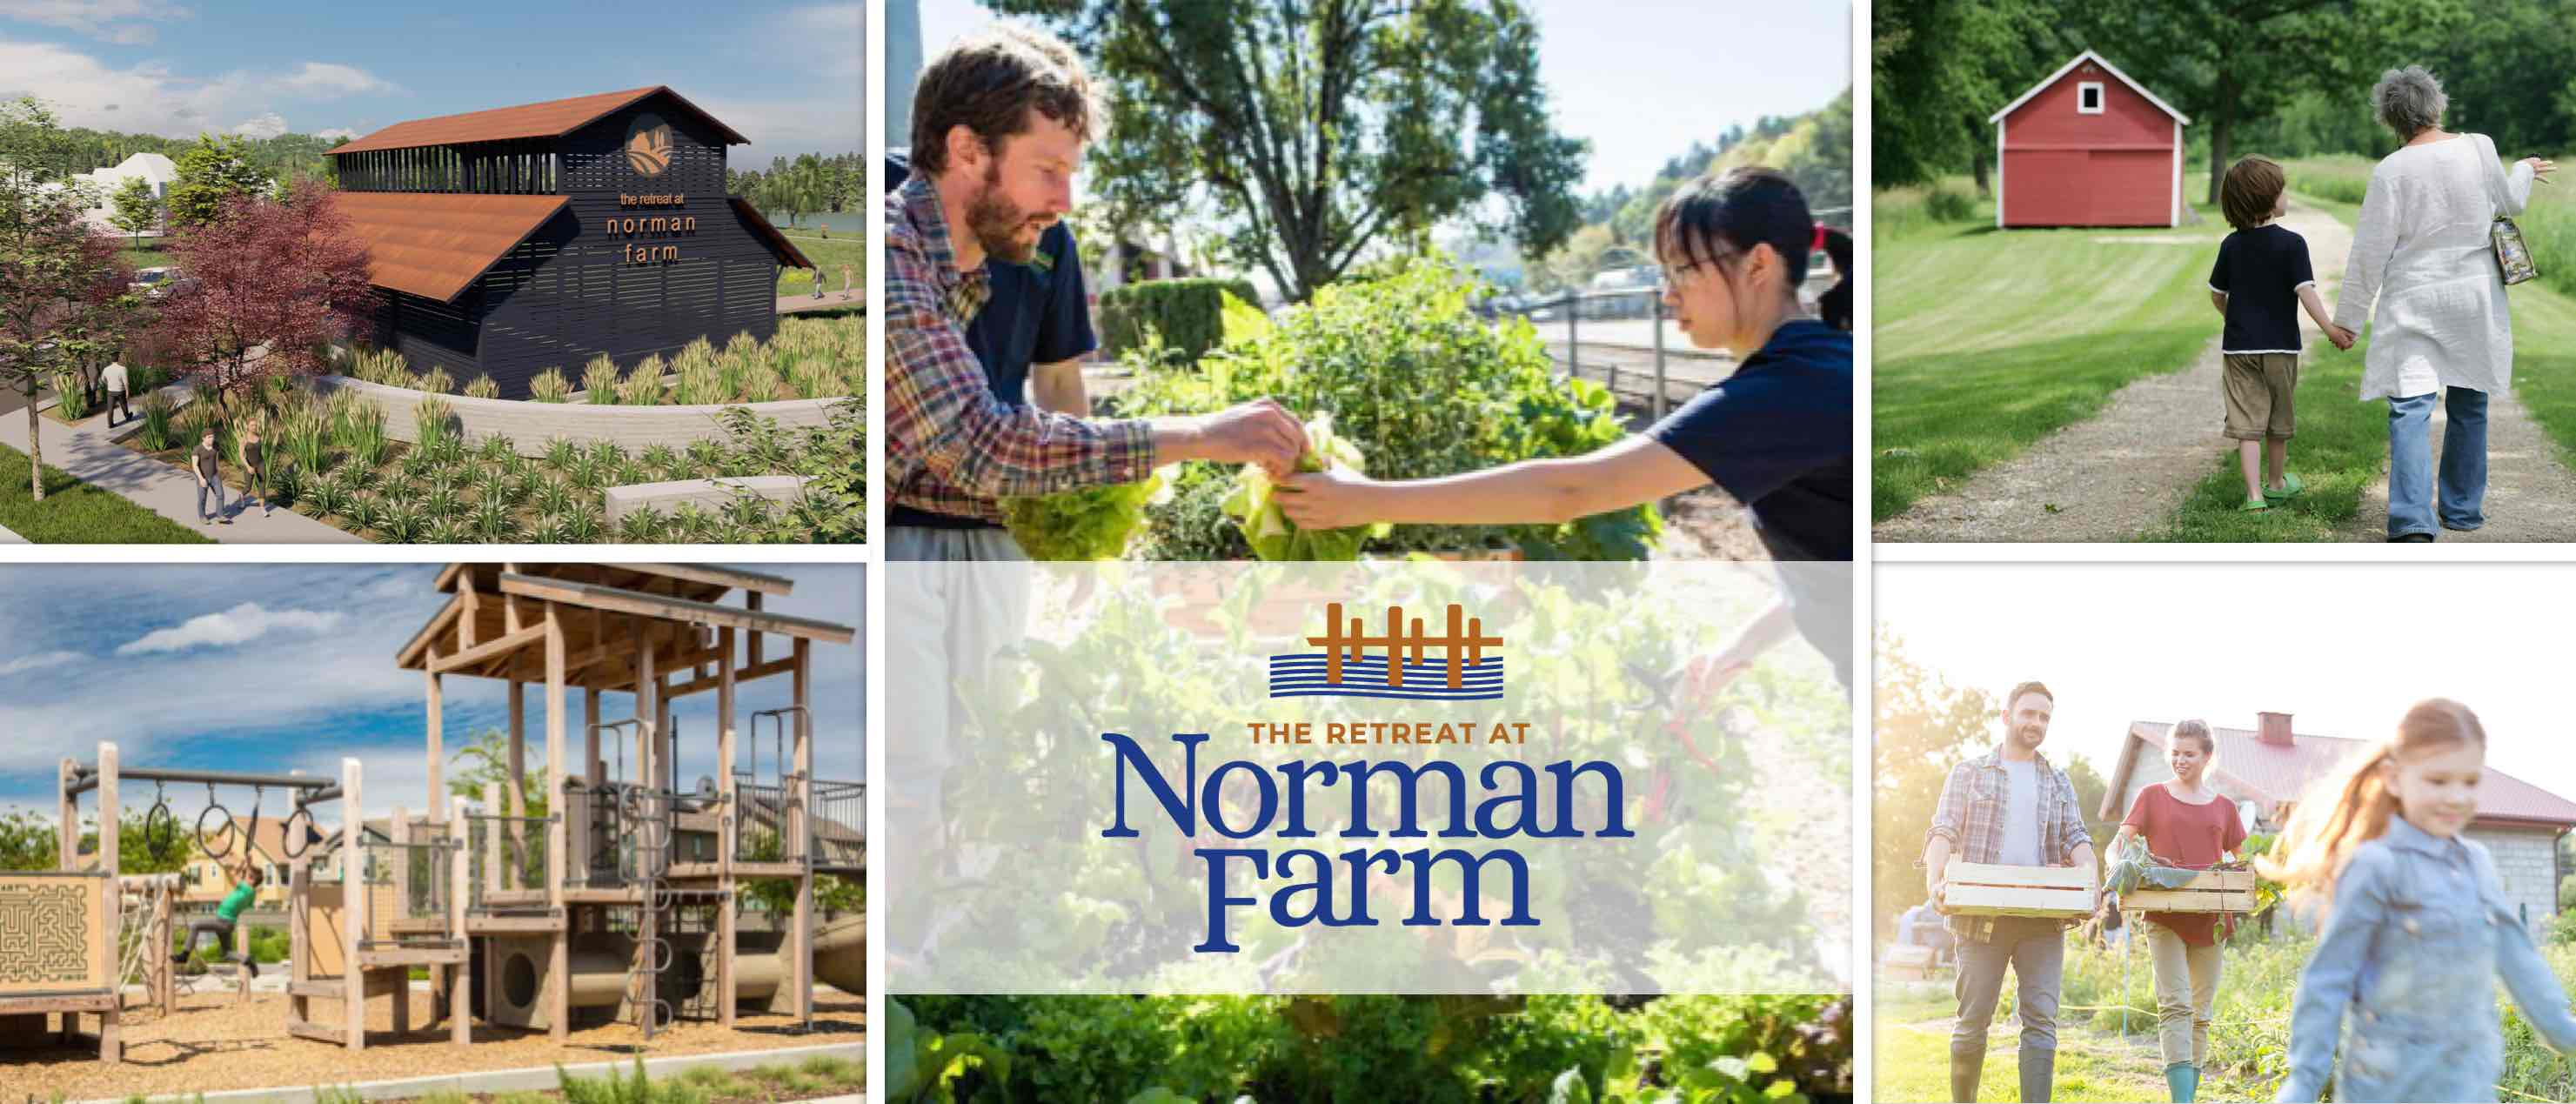 Norman Farms community coming soon